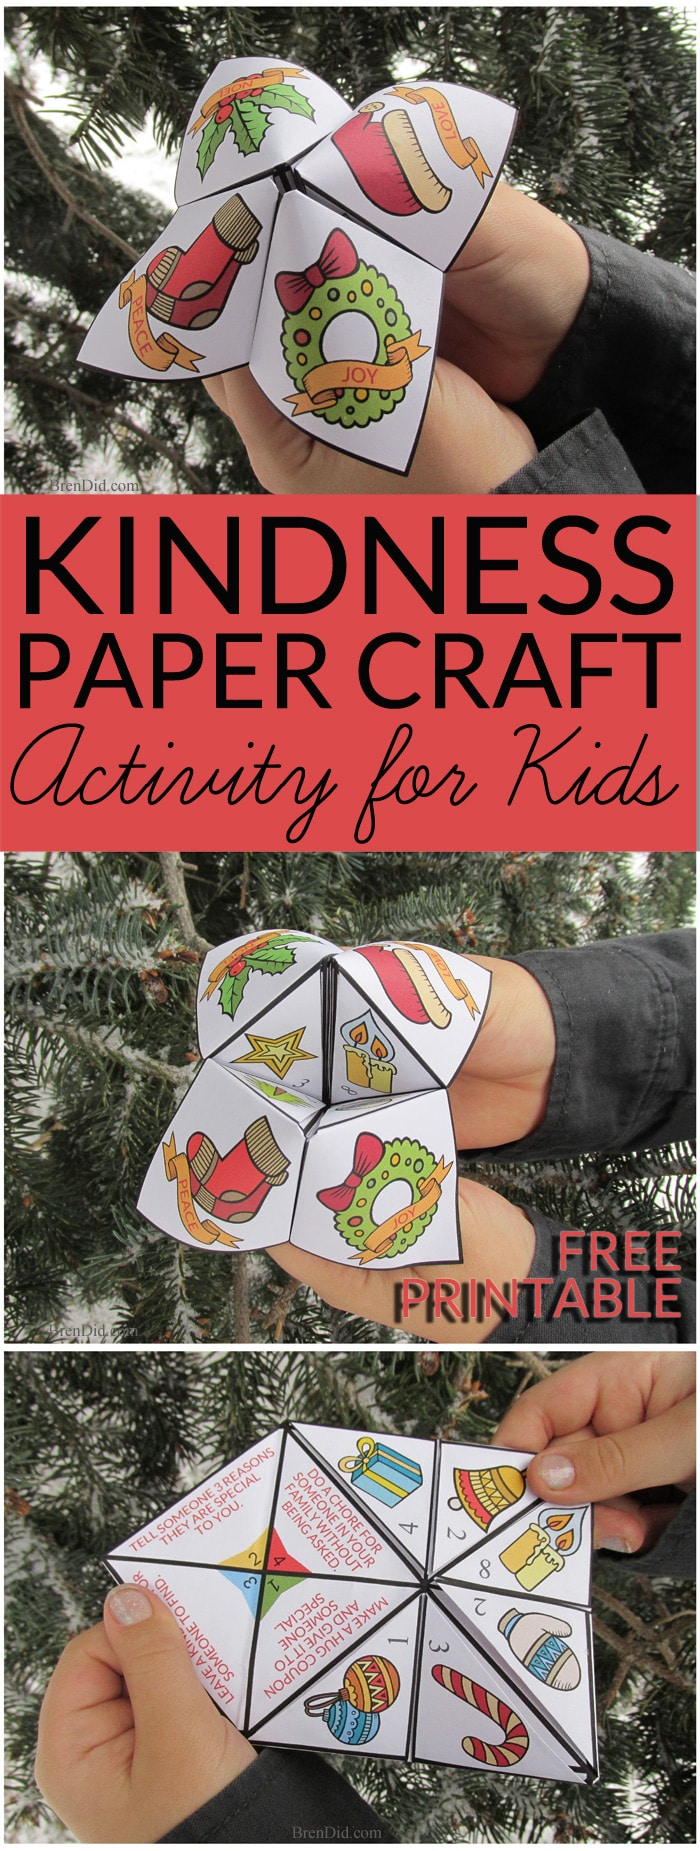 Kids love this free printable Random Acts of Kindness activity. It's a  free printable Random Acts of Kindness for Kids Christmas Cootie Catcher that encourages a spirit of generosity and giving in children.